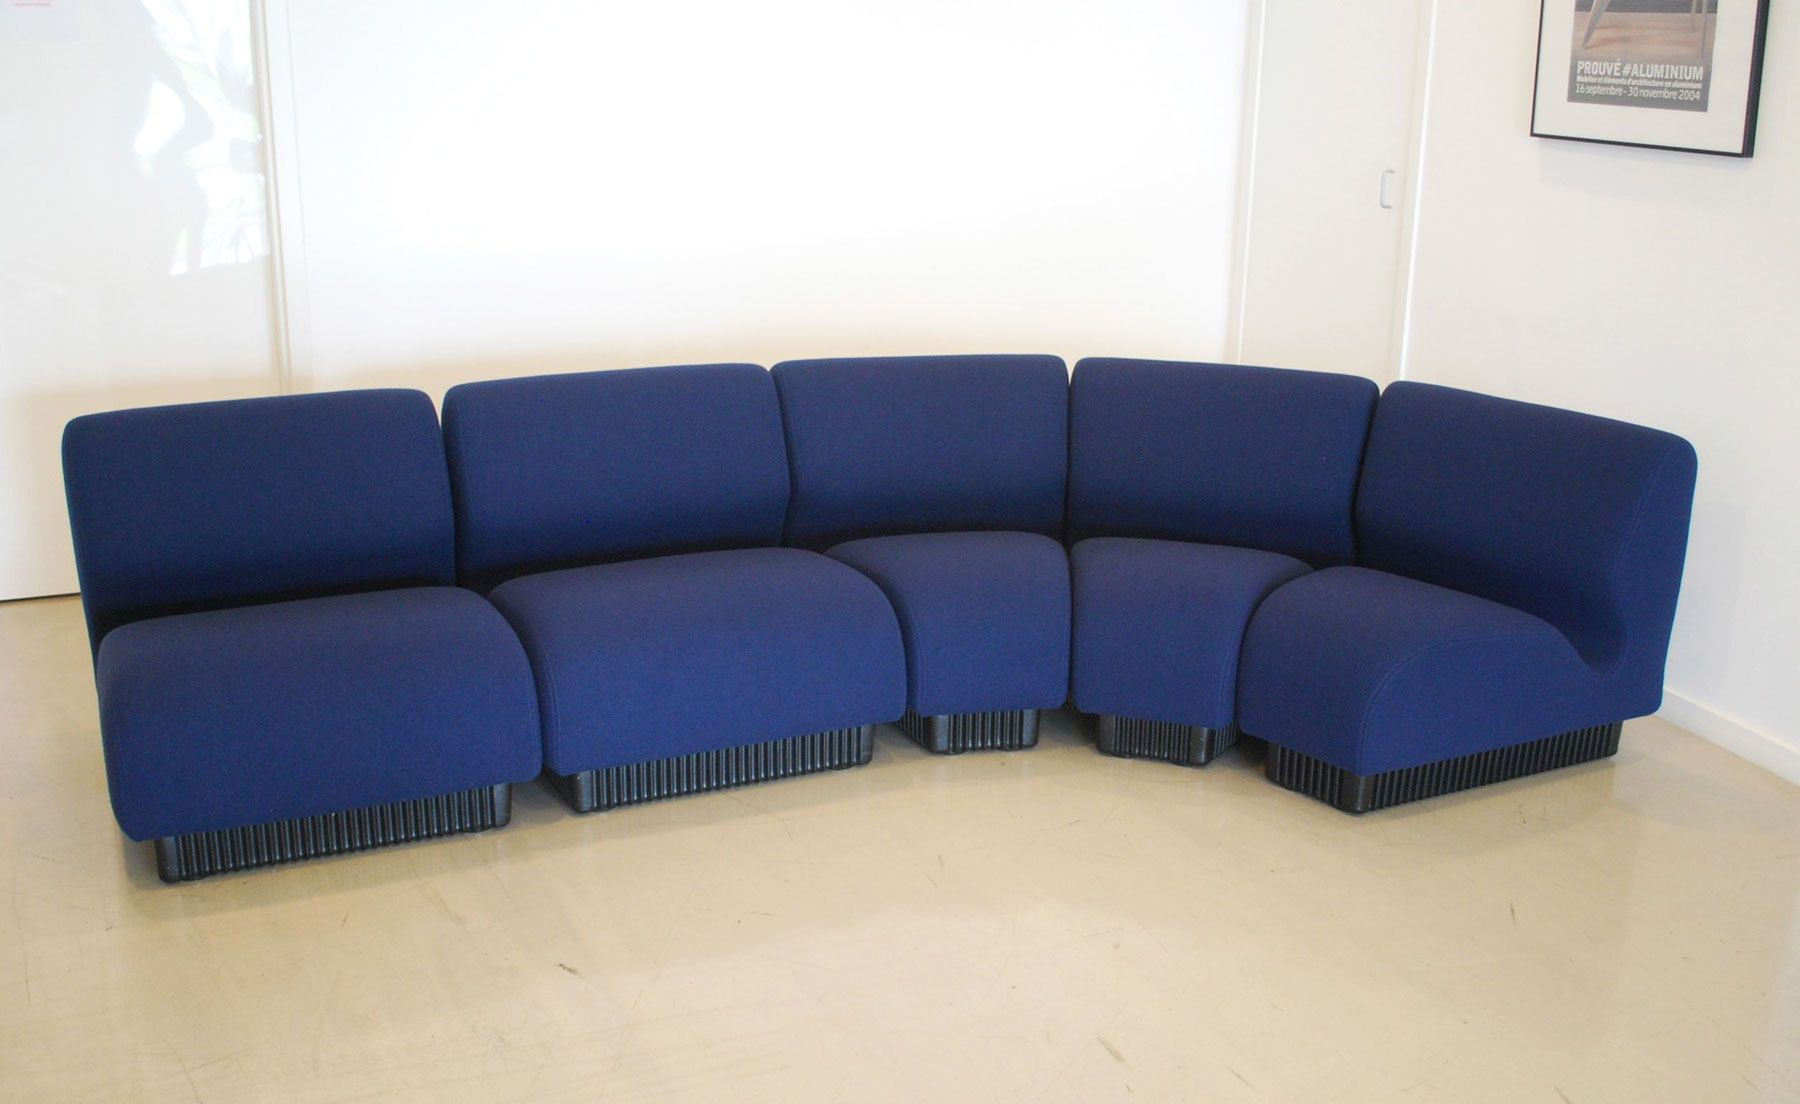 Chadwick Modular Seating Unit